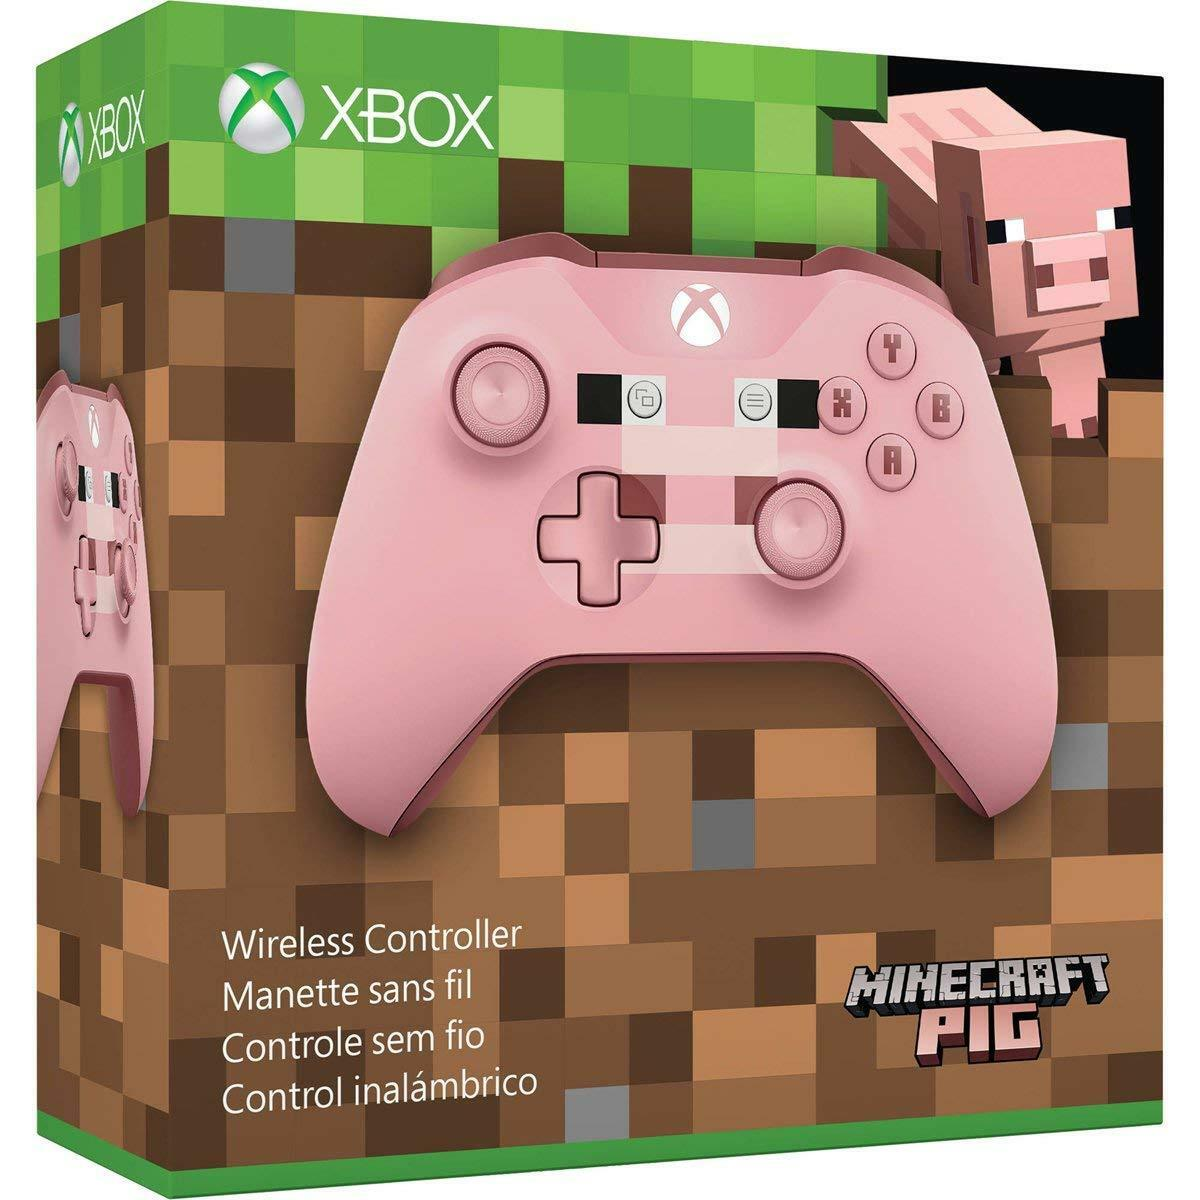 Details about Xbox One Wireless Controller Minecraft Pig Edition [Microsoft  Windows 11 Remote]